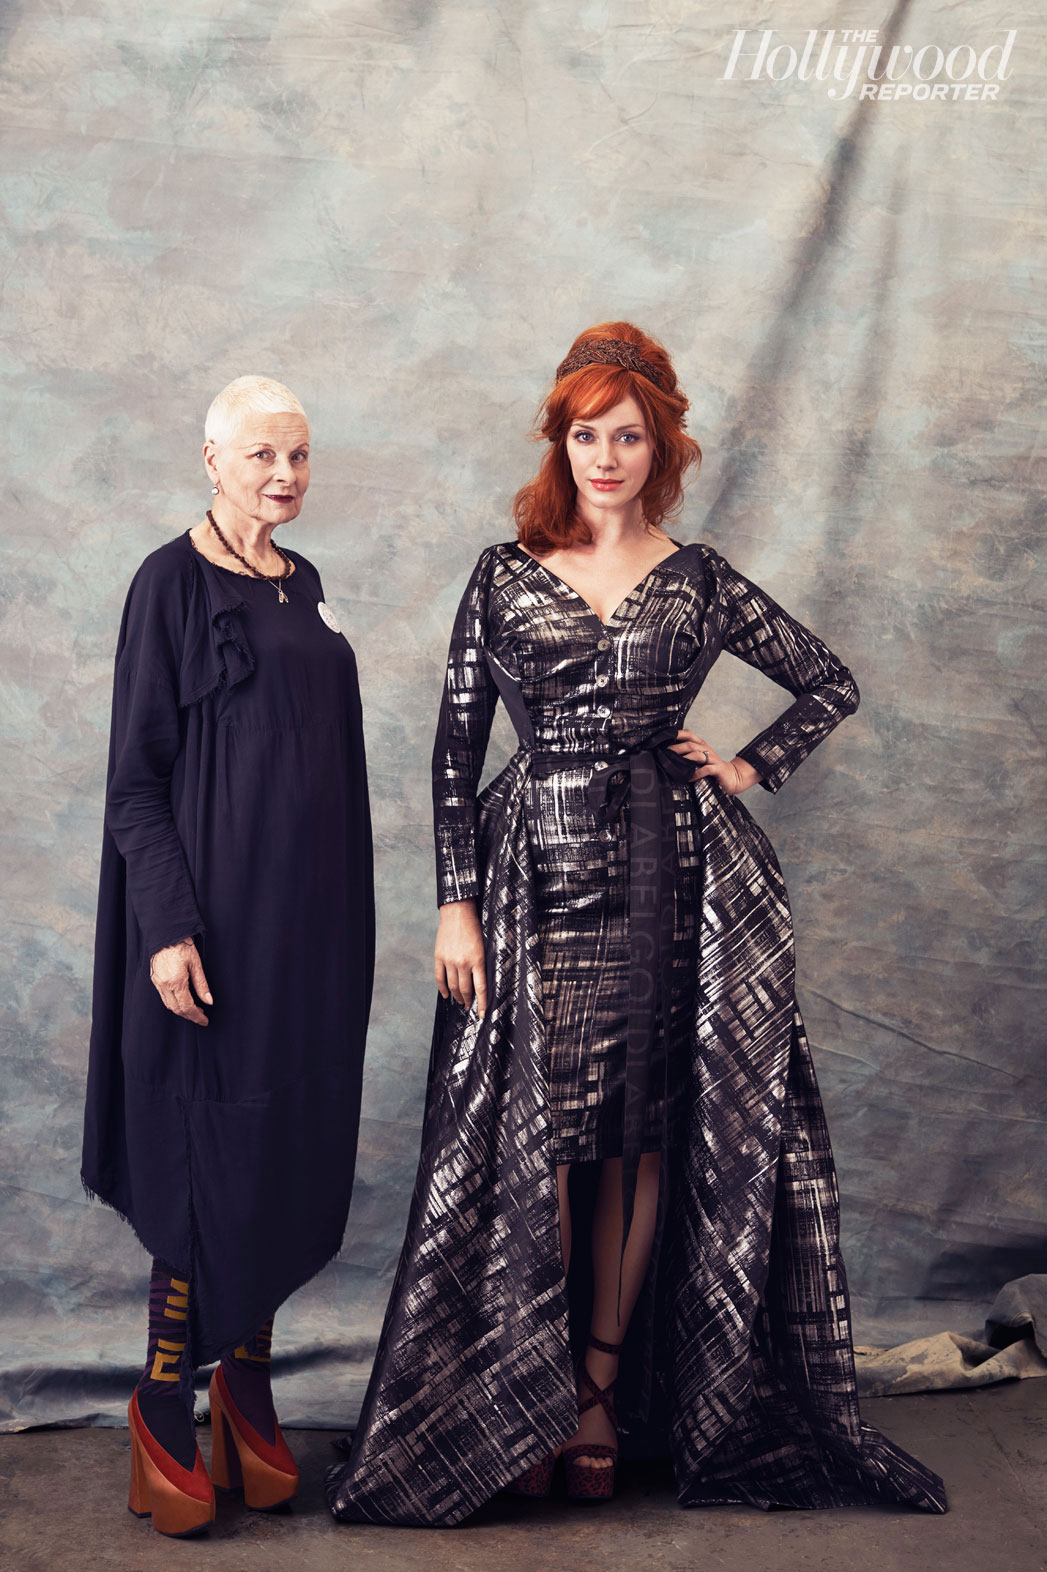 Vivienne Westwood and Christina Hendricks